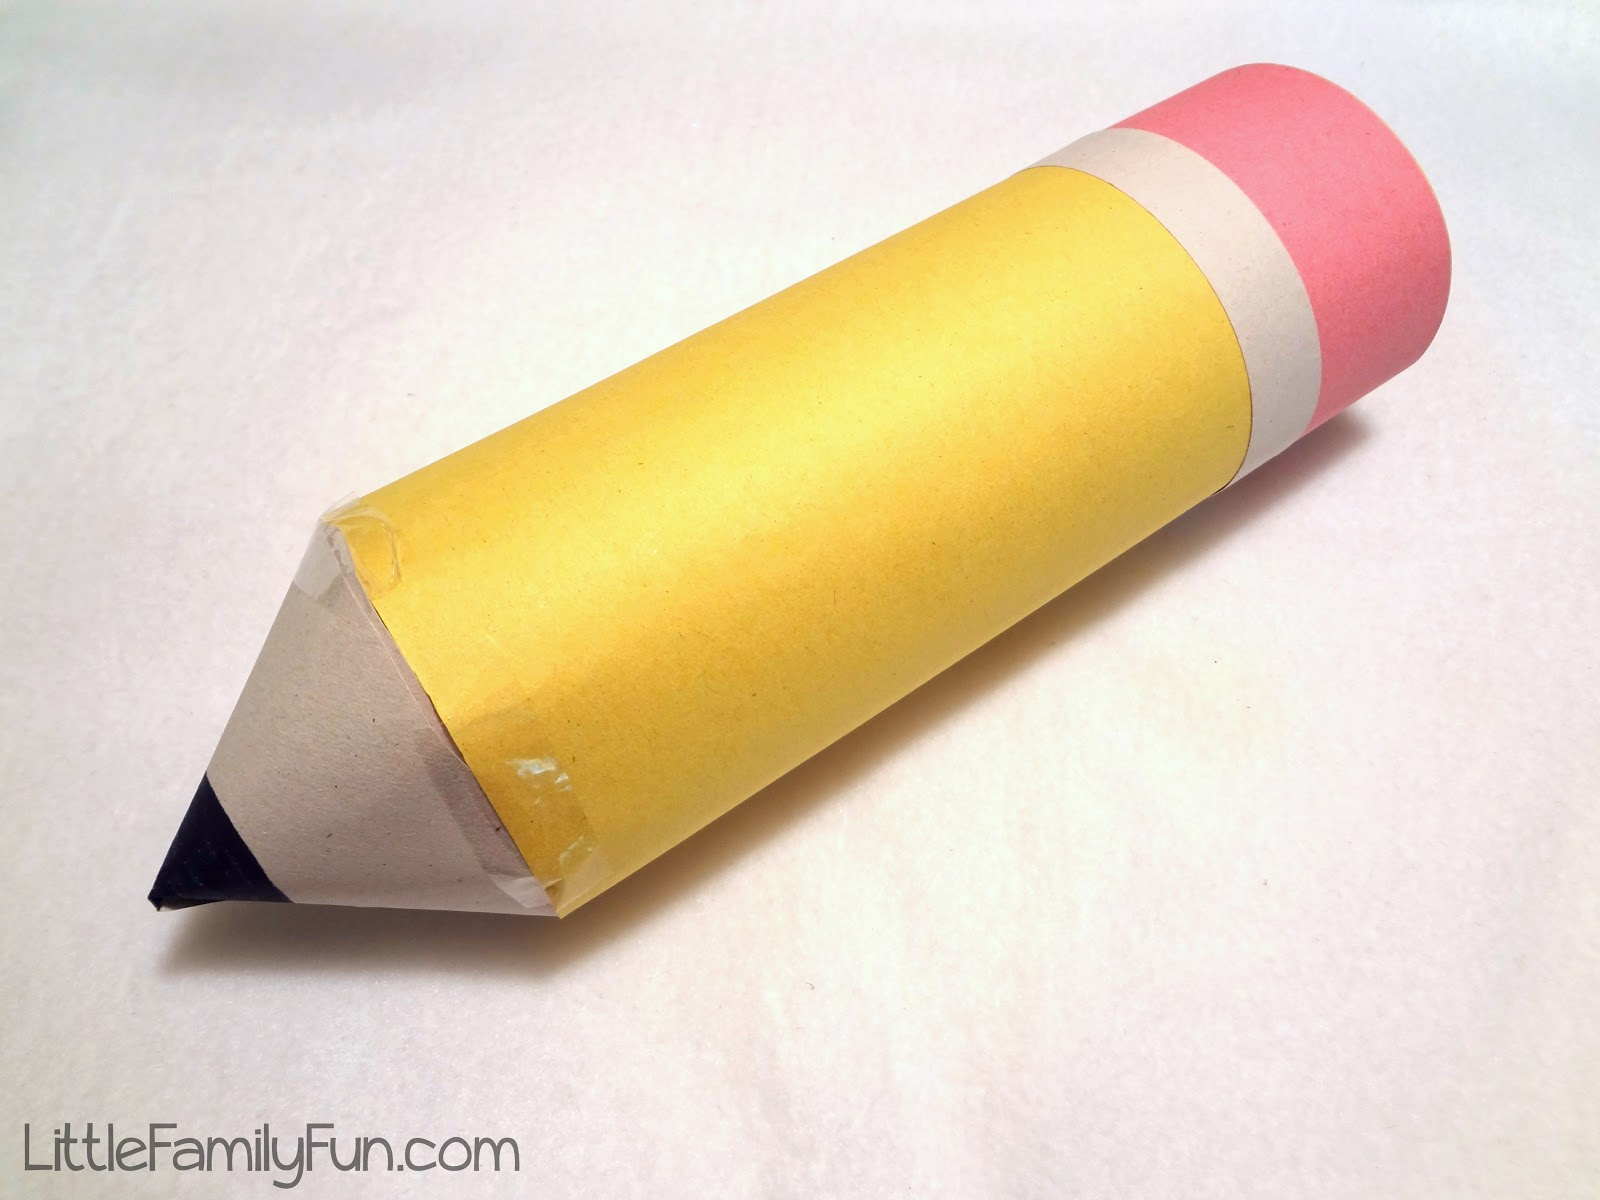 how to make a pencil stand out of paper